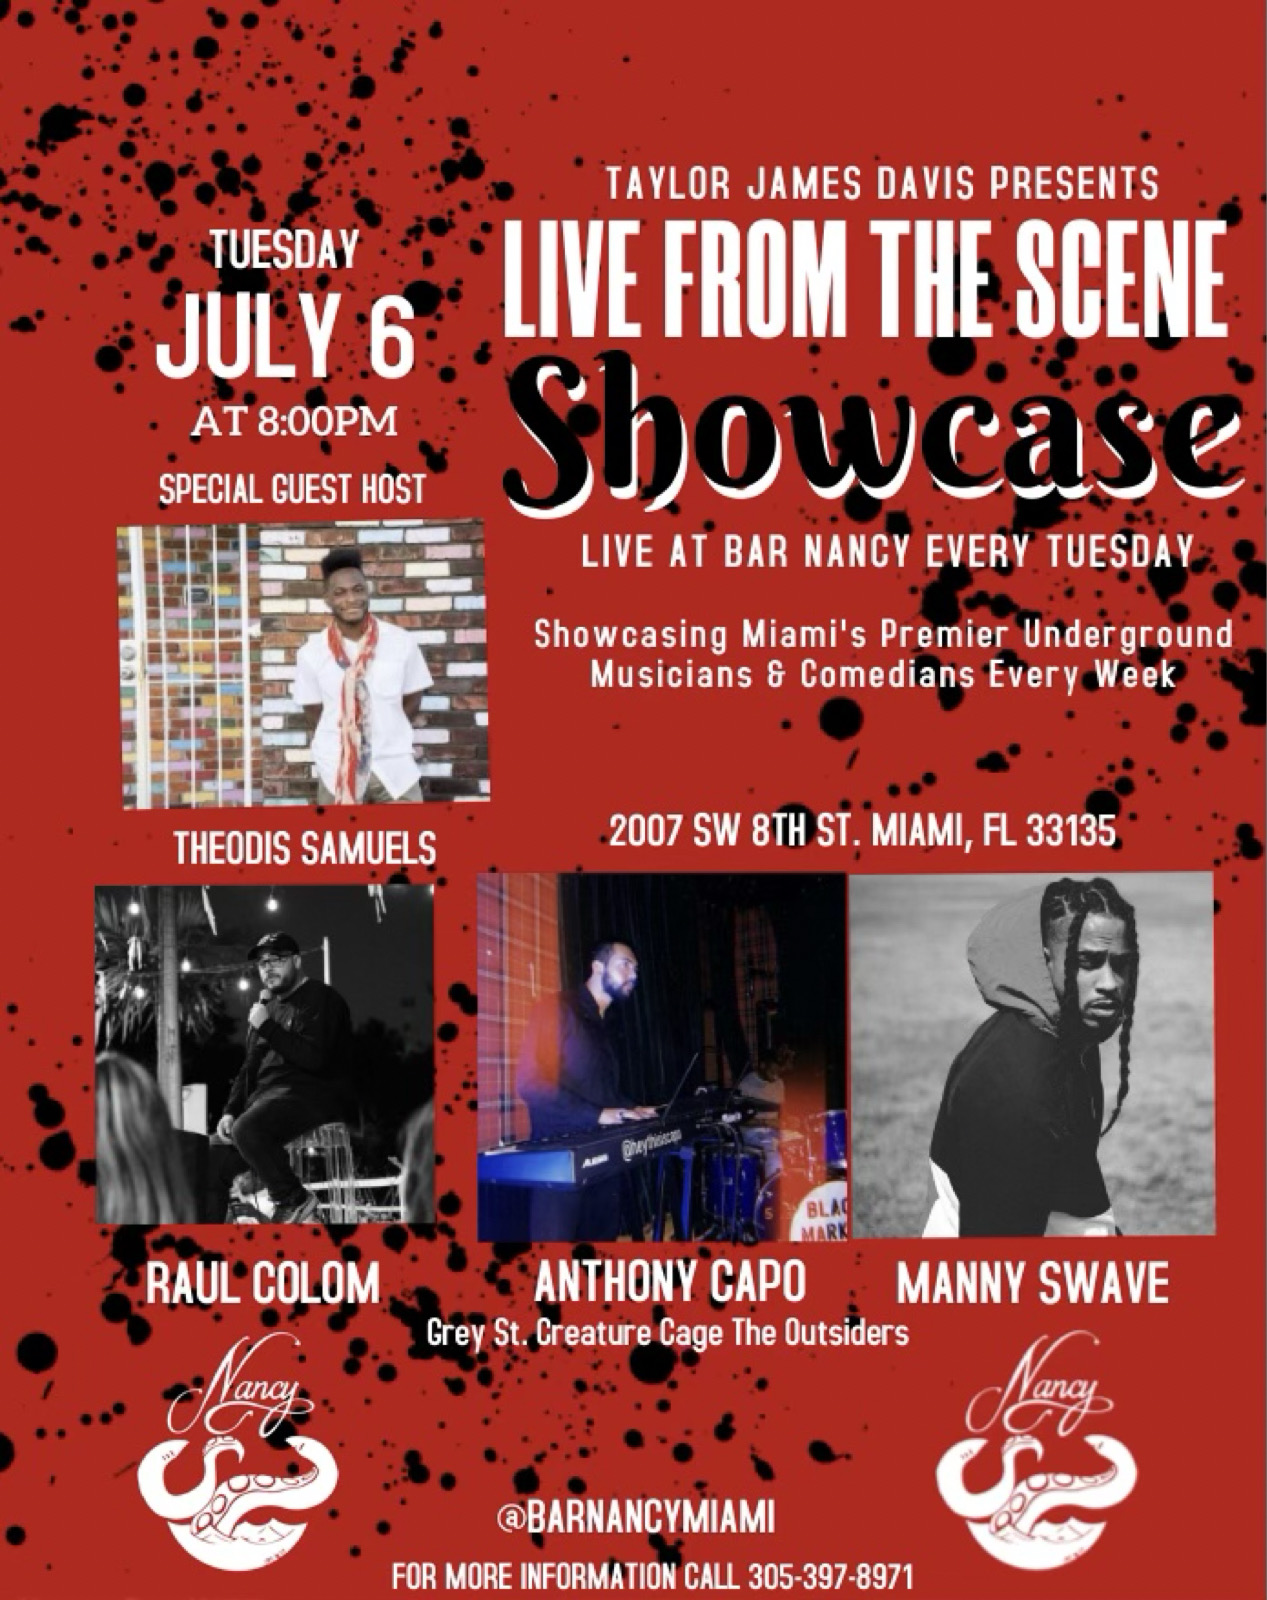 Taylor James Davis Presents - Live From The Scene Showcase at Bar Nancy every Tuesday